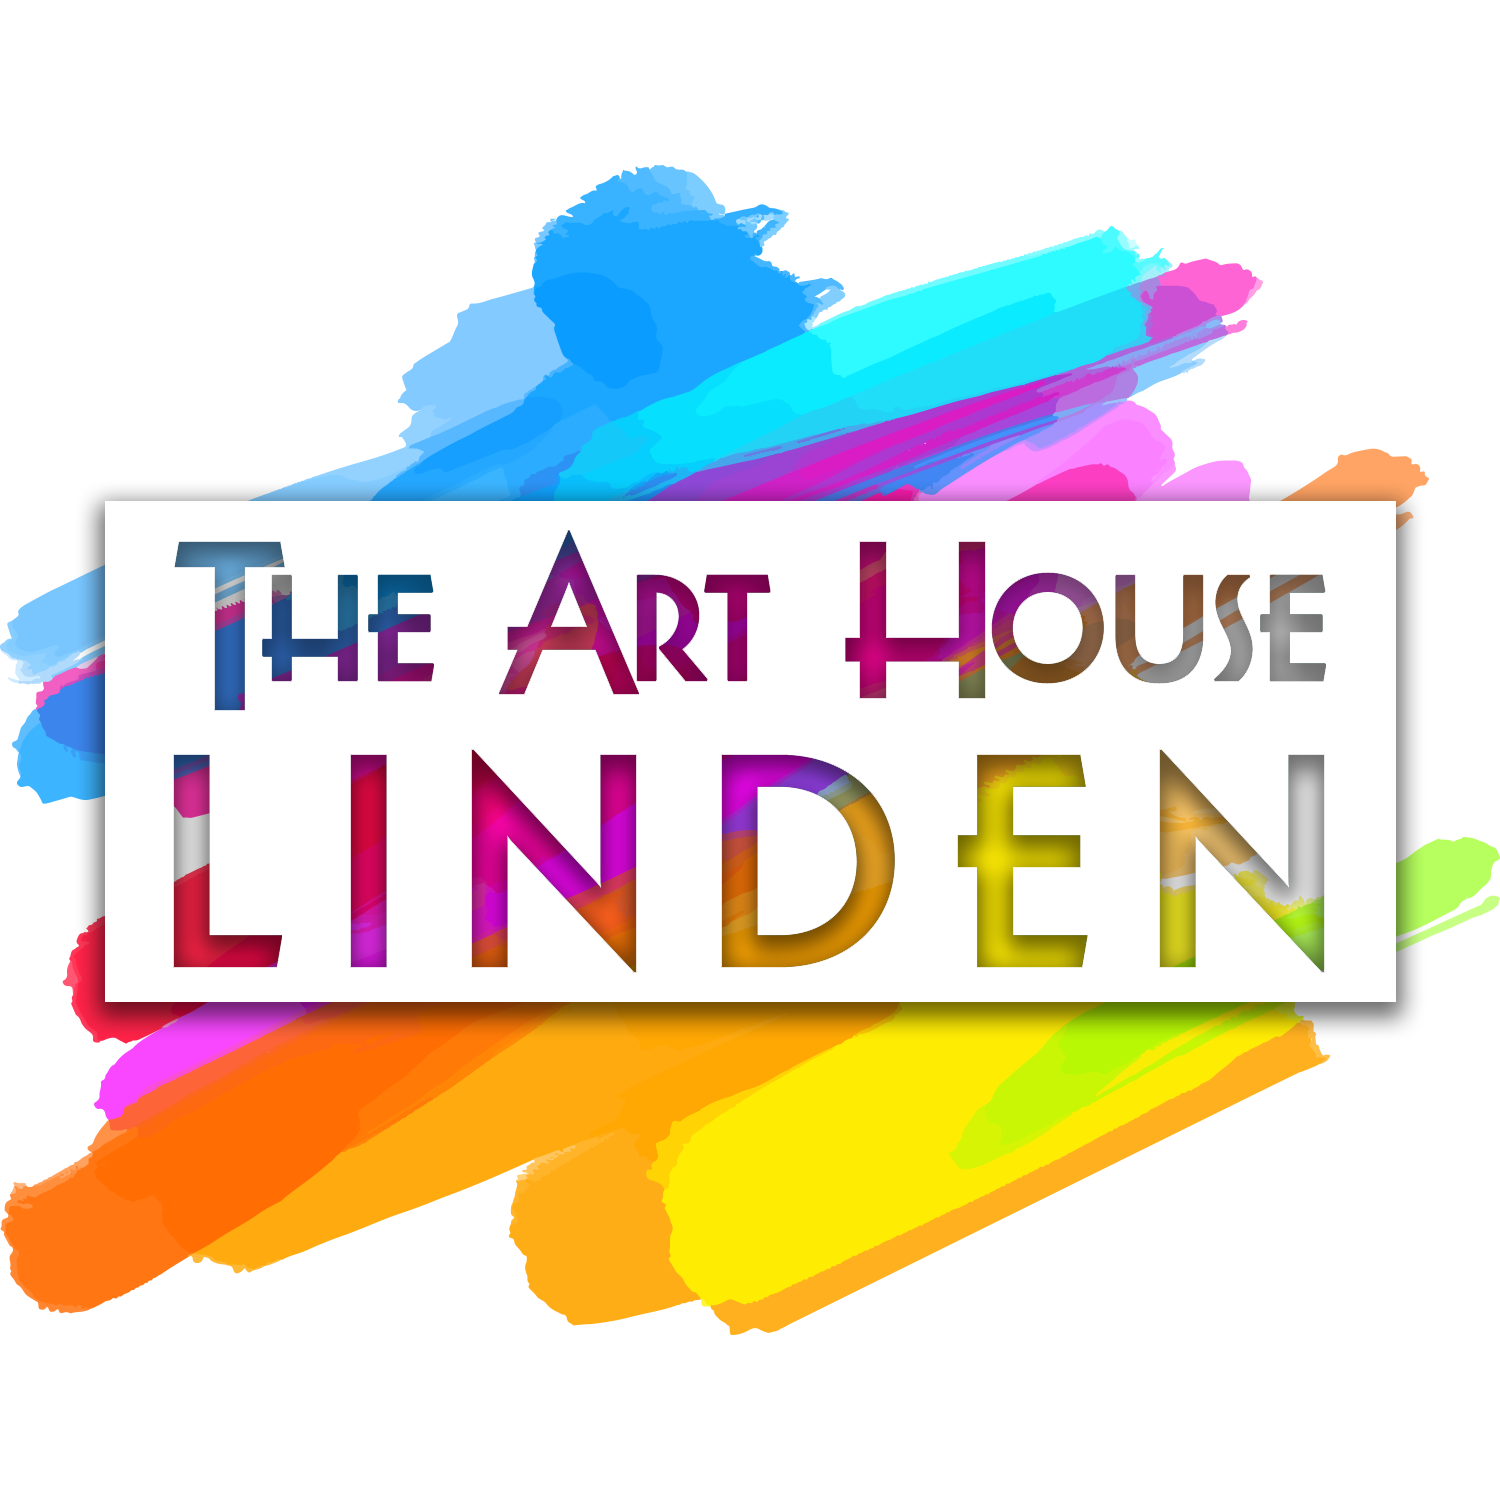 The Arthouse Linden